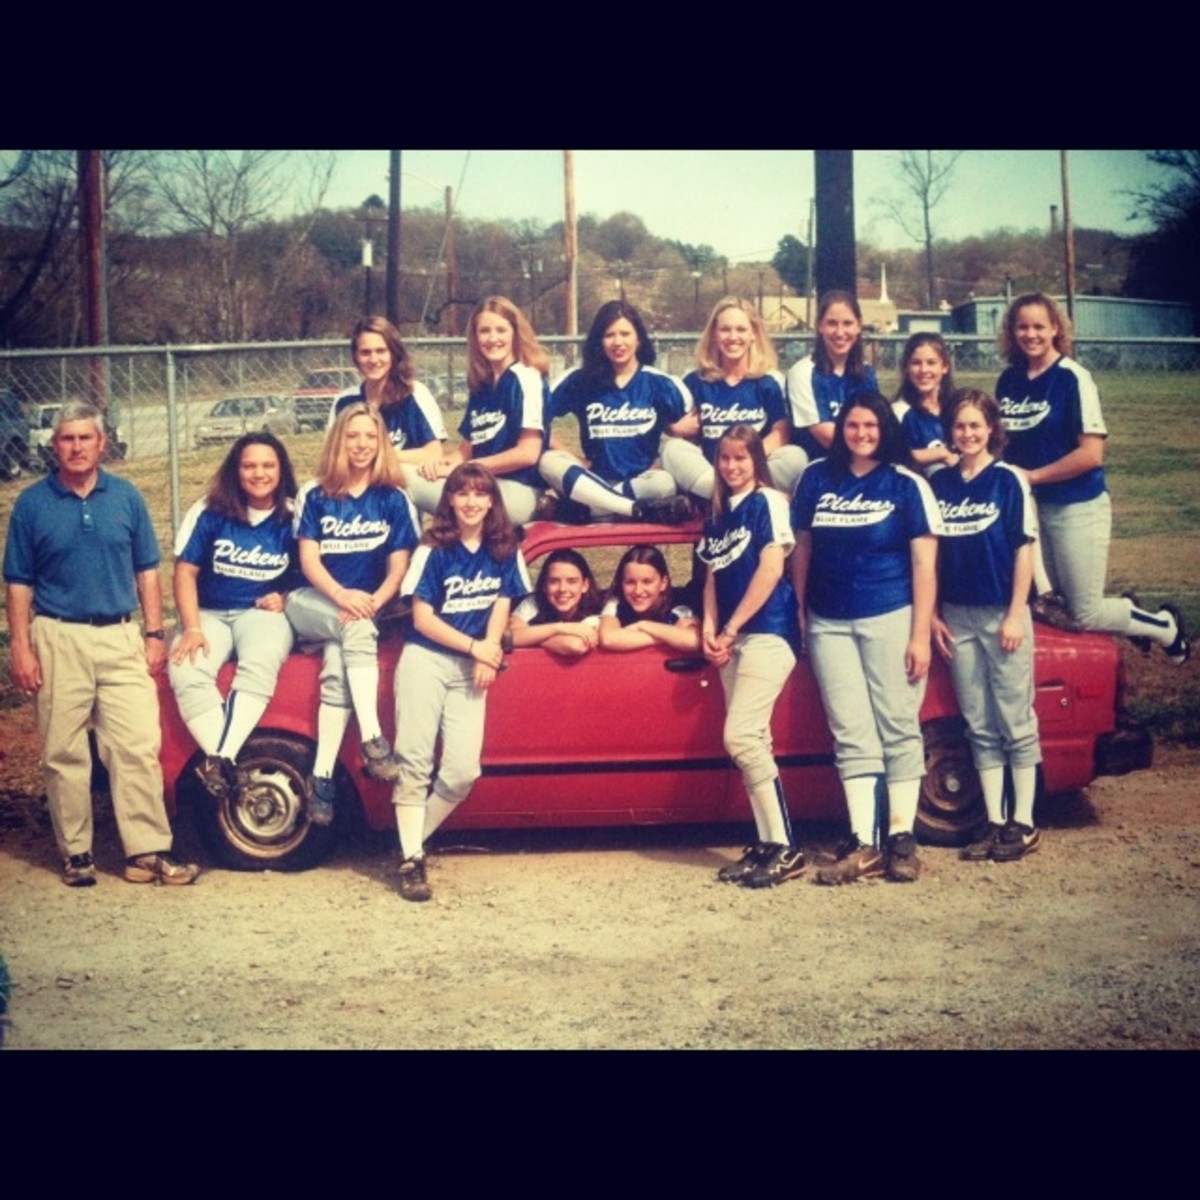 High School Softball team